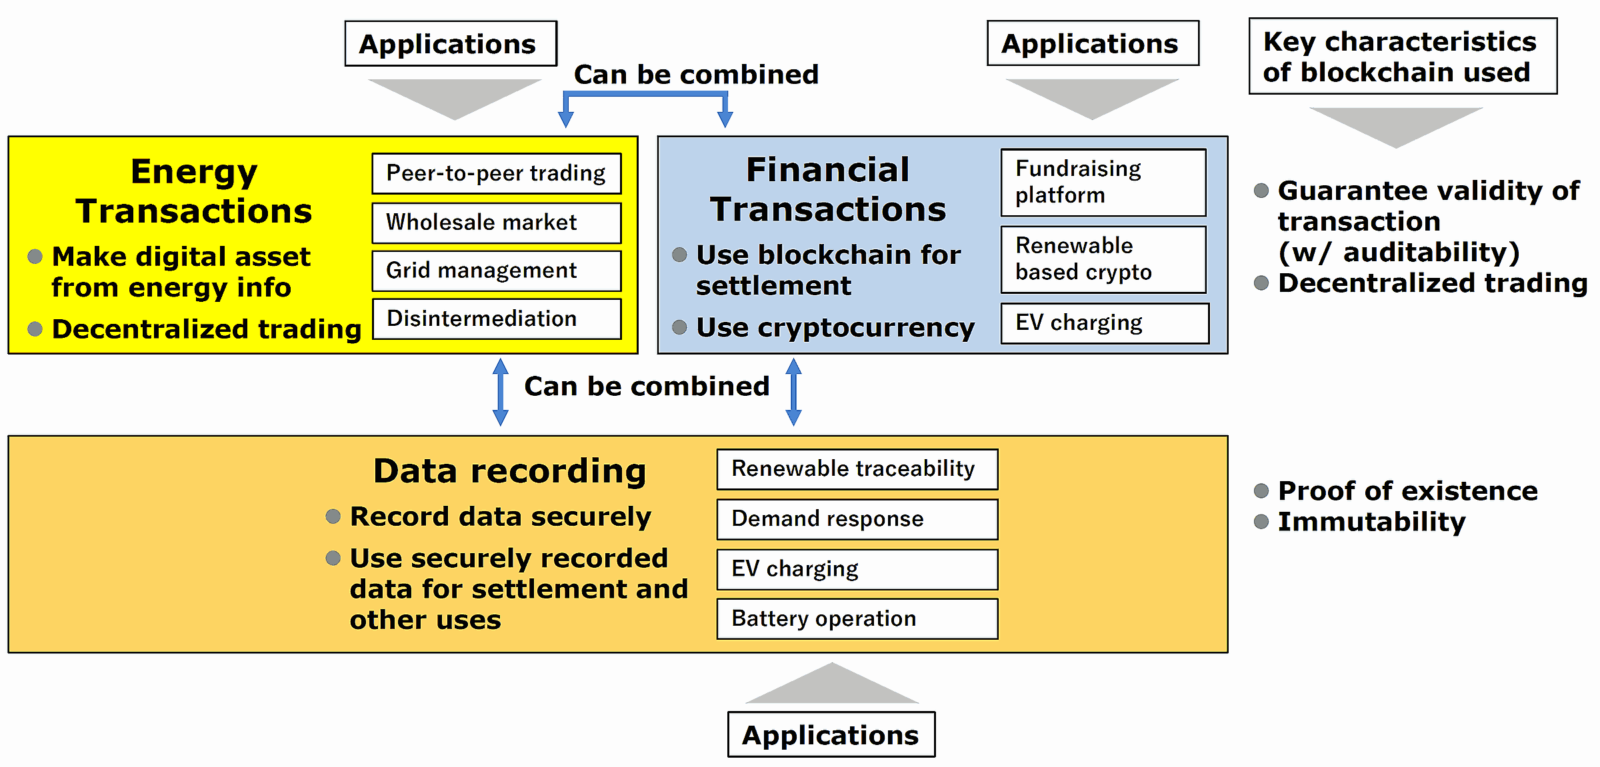 Figure 1: Categorization of blockchain application in the energy sector (source: created by author, contribution to IEEE P2418.5 Working Group on energy blockchain standardization)